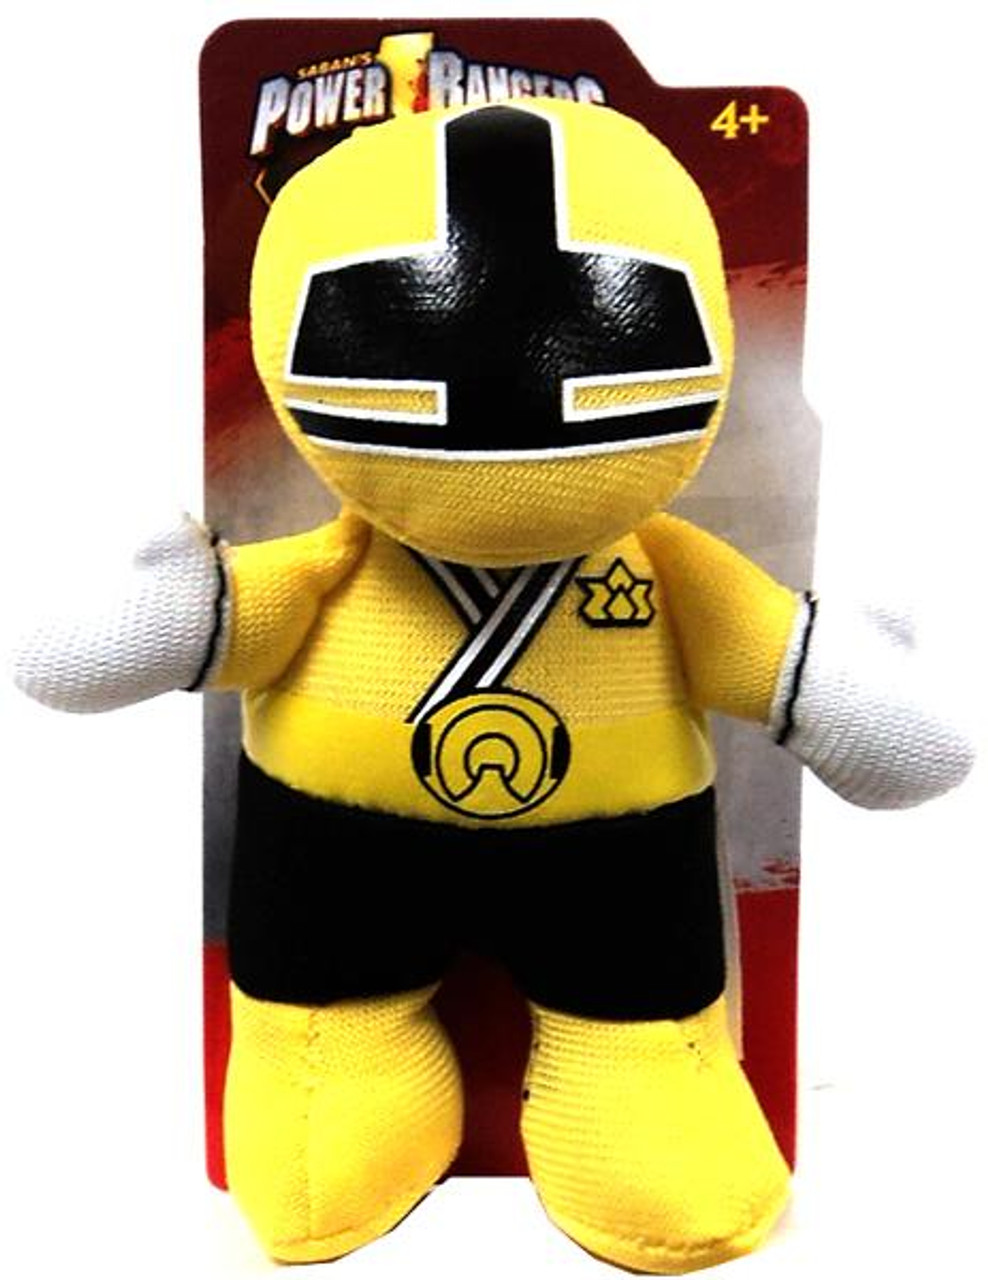 Power Rangers Super Samurai 3 Inch Yellow Ranger Plush